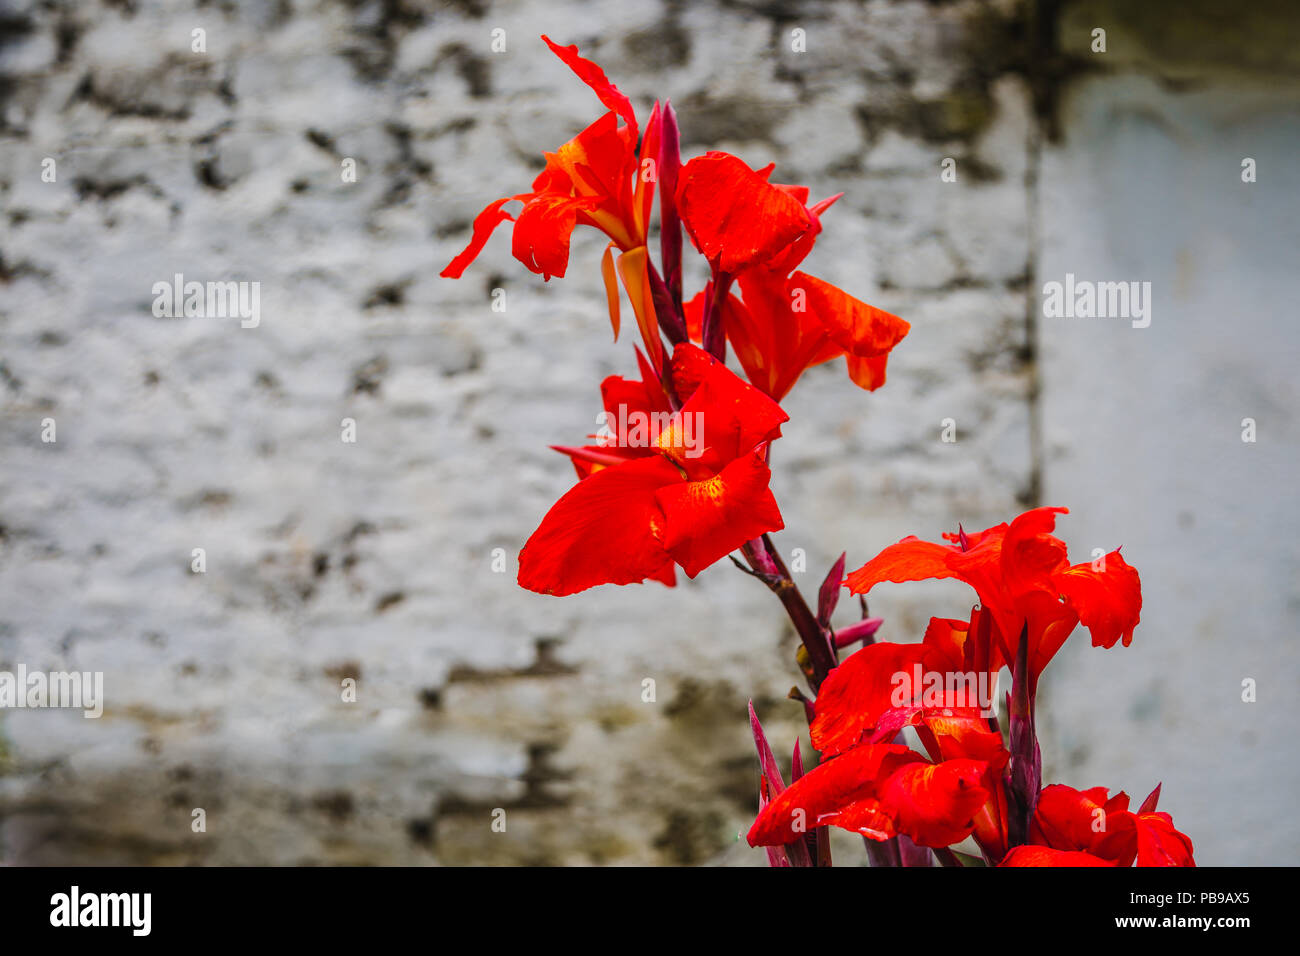 Abstract Natural Nature Red Flowers Background Spring And Summer